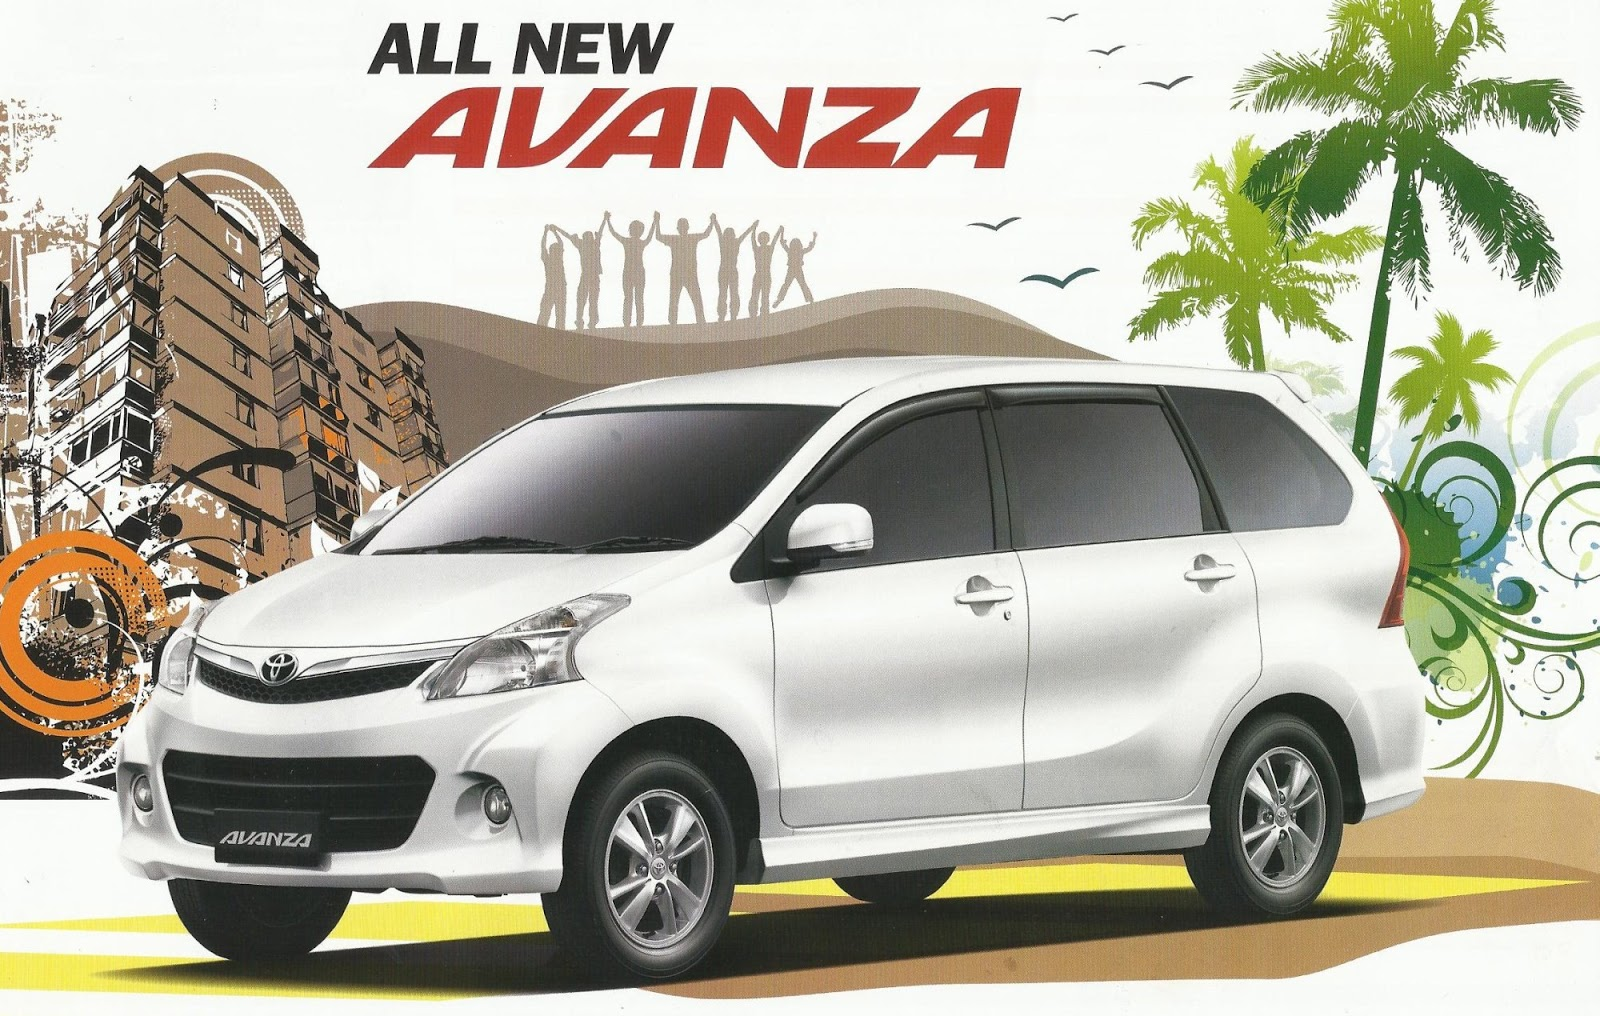 Harga Grand New Avanza Second All Camry Specs Dotautomotive